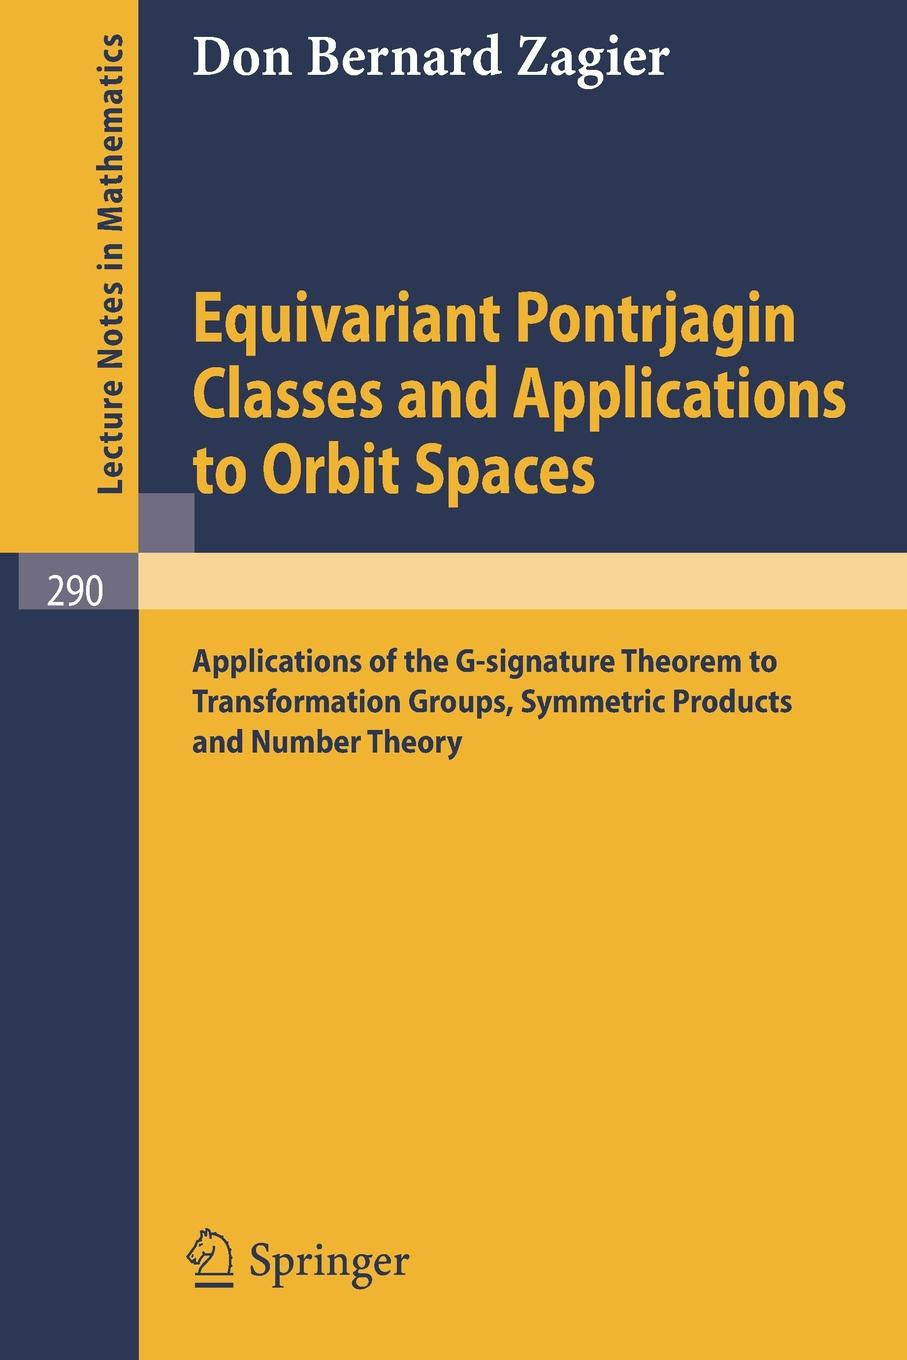 Фото D. B. Zagier Equivariant Pontrjagin Classes and Applications to Orbit Spaces. Applications of the G-signature Theorem to Transformation Groups, Symmetric Products and Number Theory